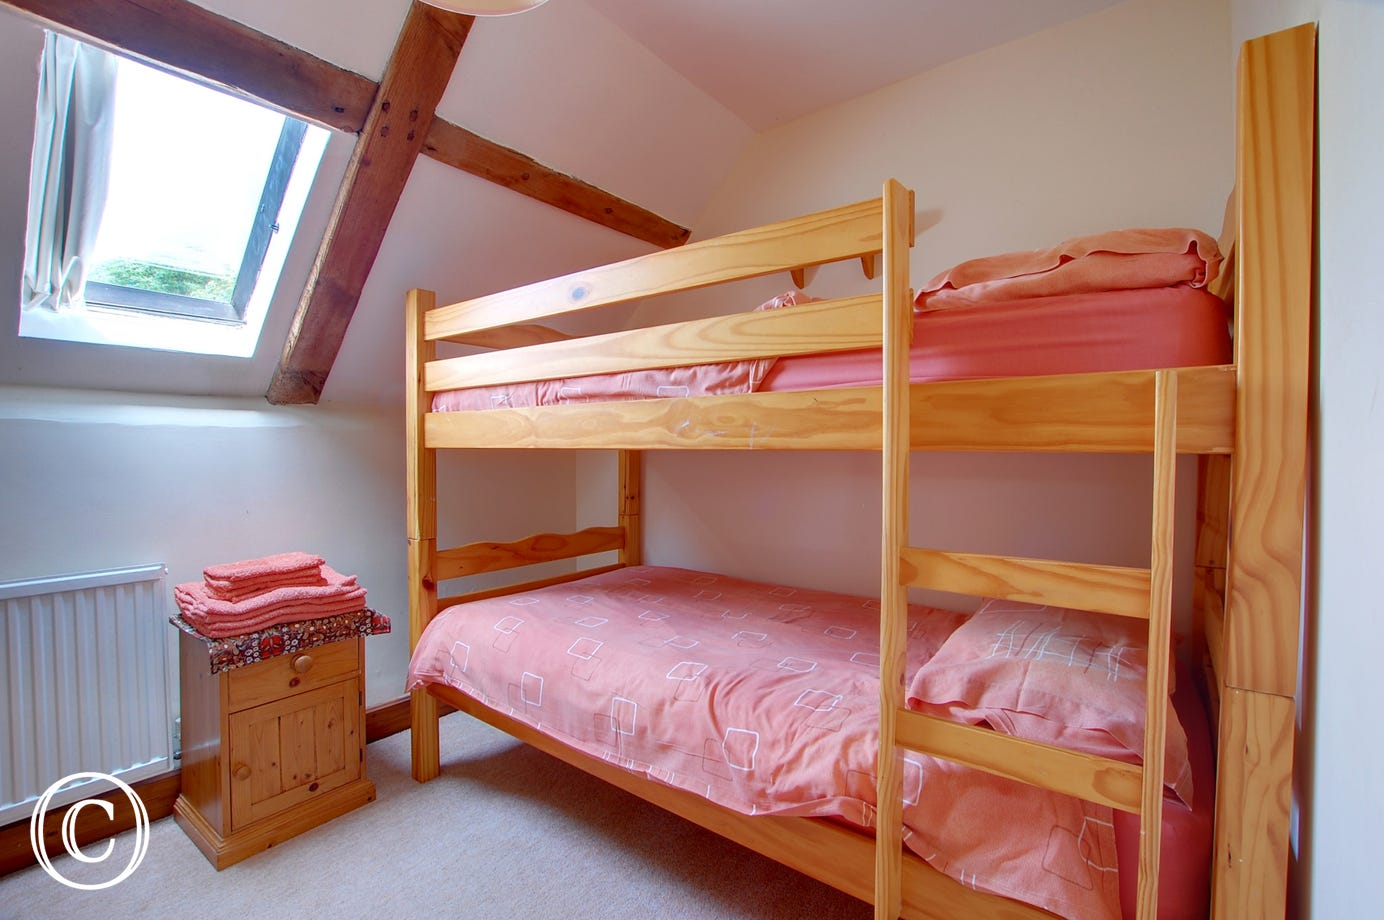 Light and airy bedroom with wooden bunk beds, ideal for children